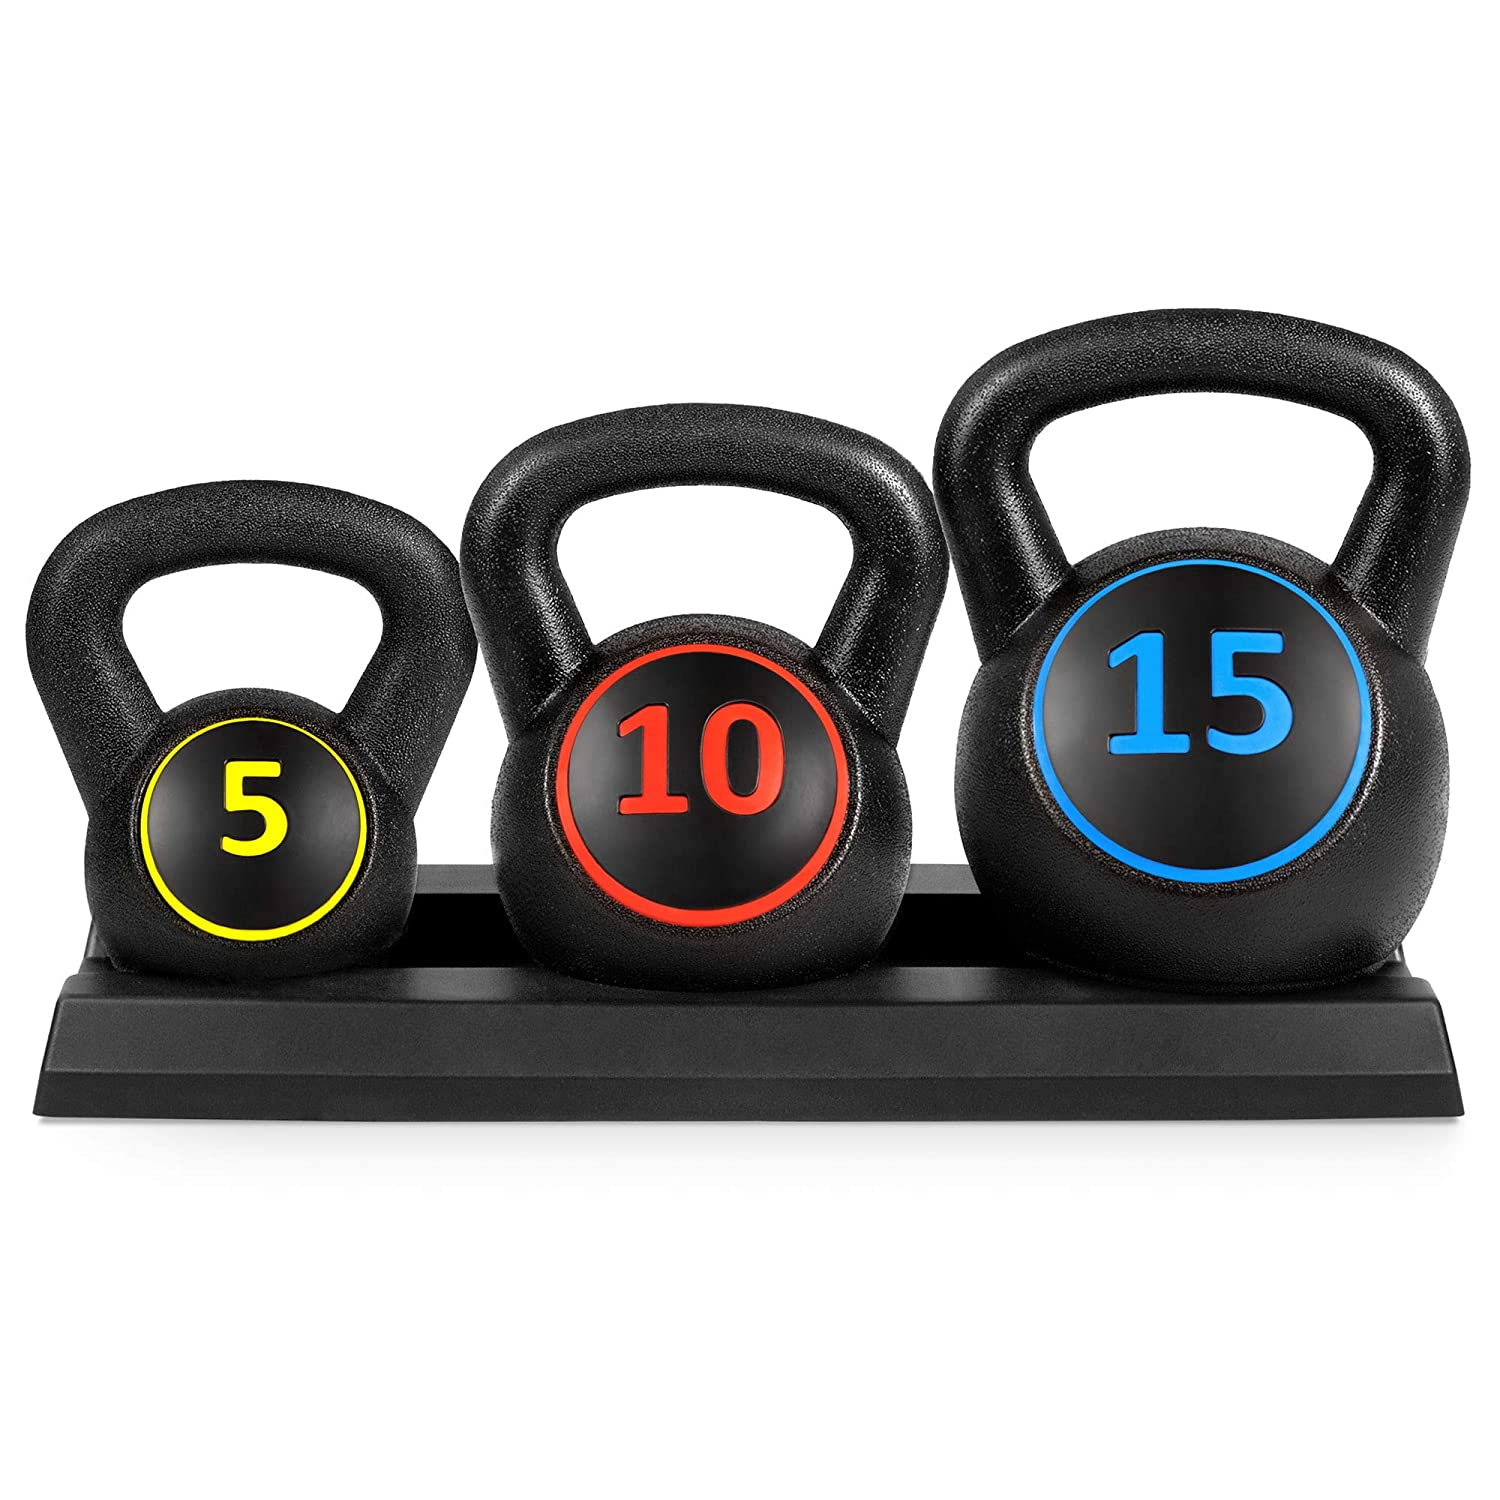 Best Choice Products 3-Piece HDPE Kettlebell Exercise Fitness Weight Set w 5lb, 10lb, 15lb Weights, Base Rack – Black